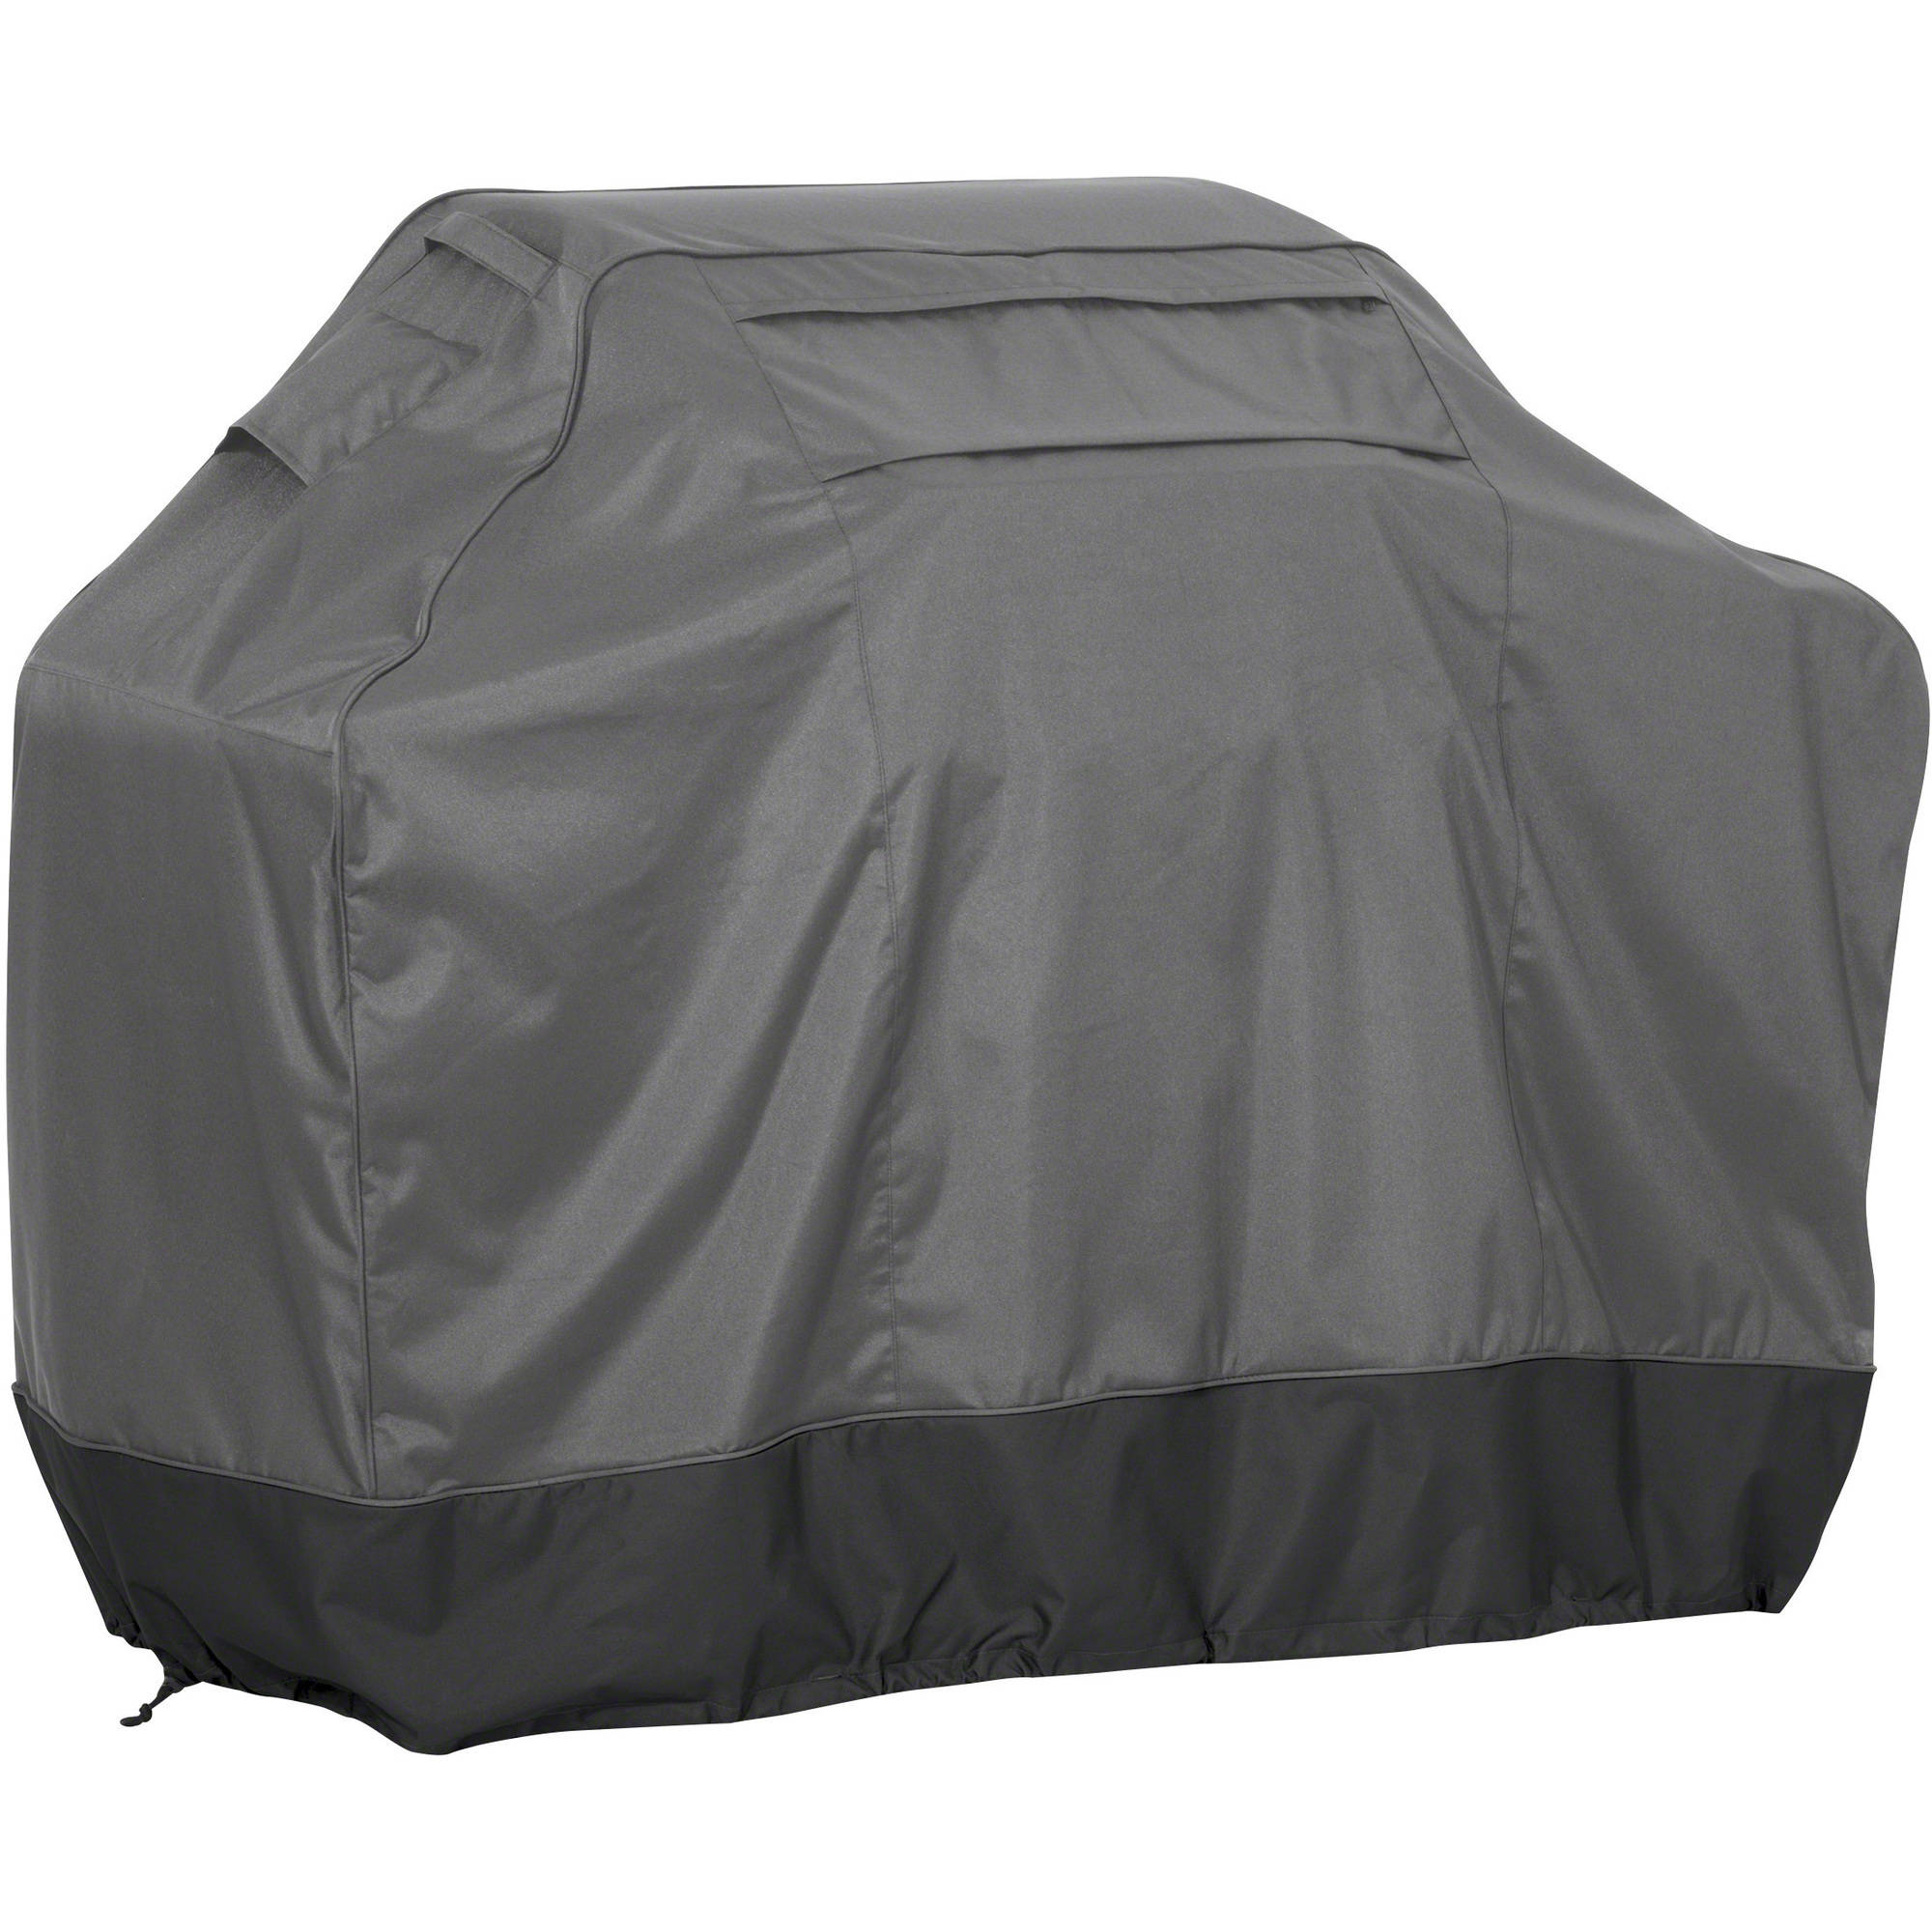 Classic Accessories FadeSafe BBQ Grill Cover, Medium, Dark Shadow and Raven